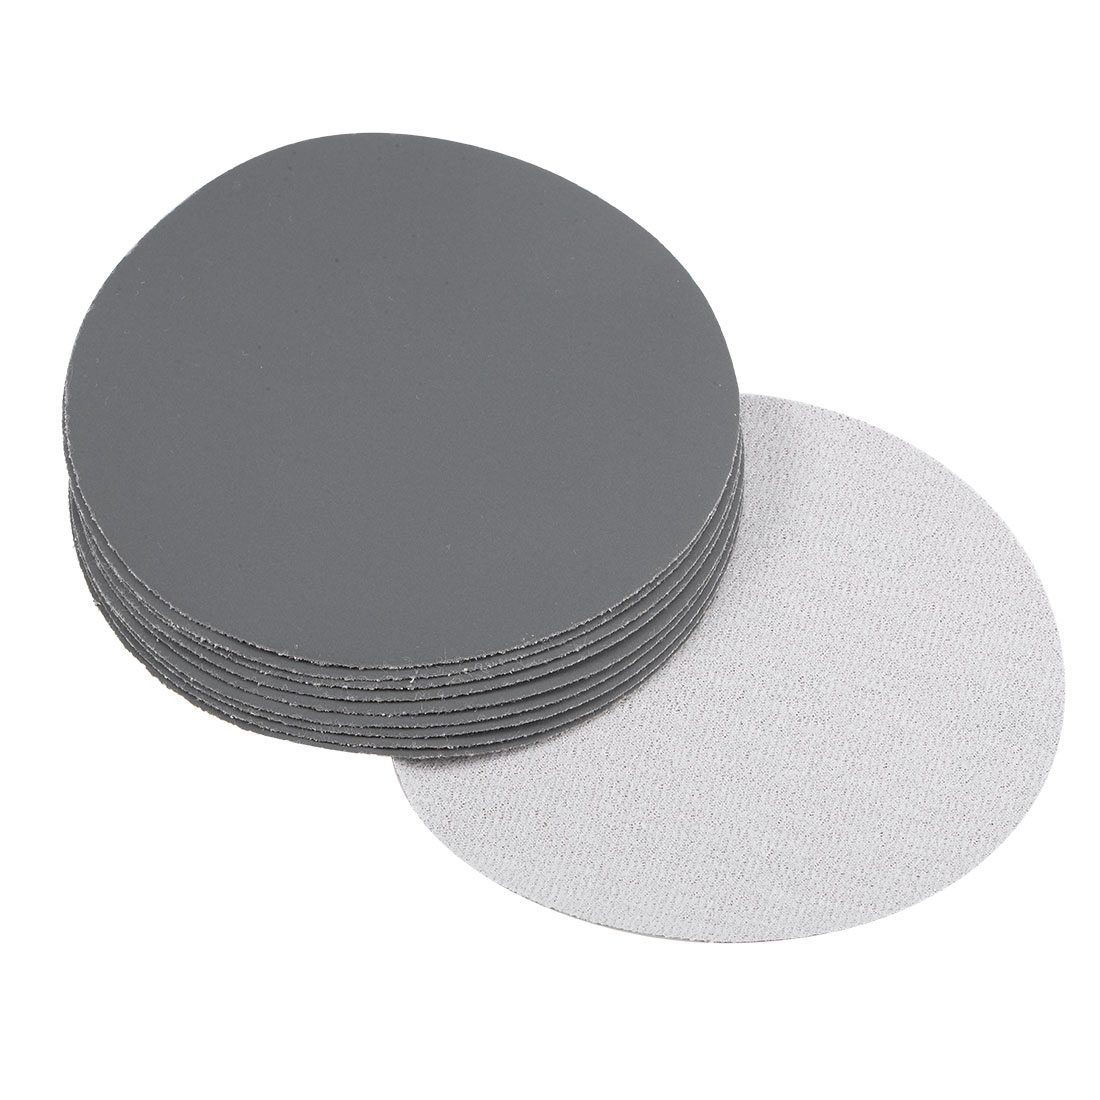 5 inch Wet Dry Discs 2500 Grit Hook and Loop Sanding Disc Silicon Carbide 10pcs